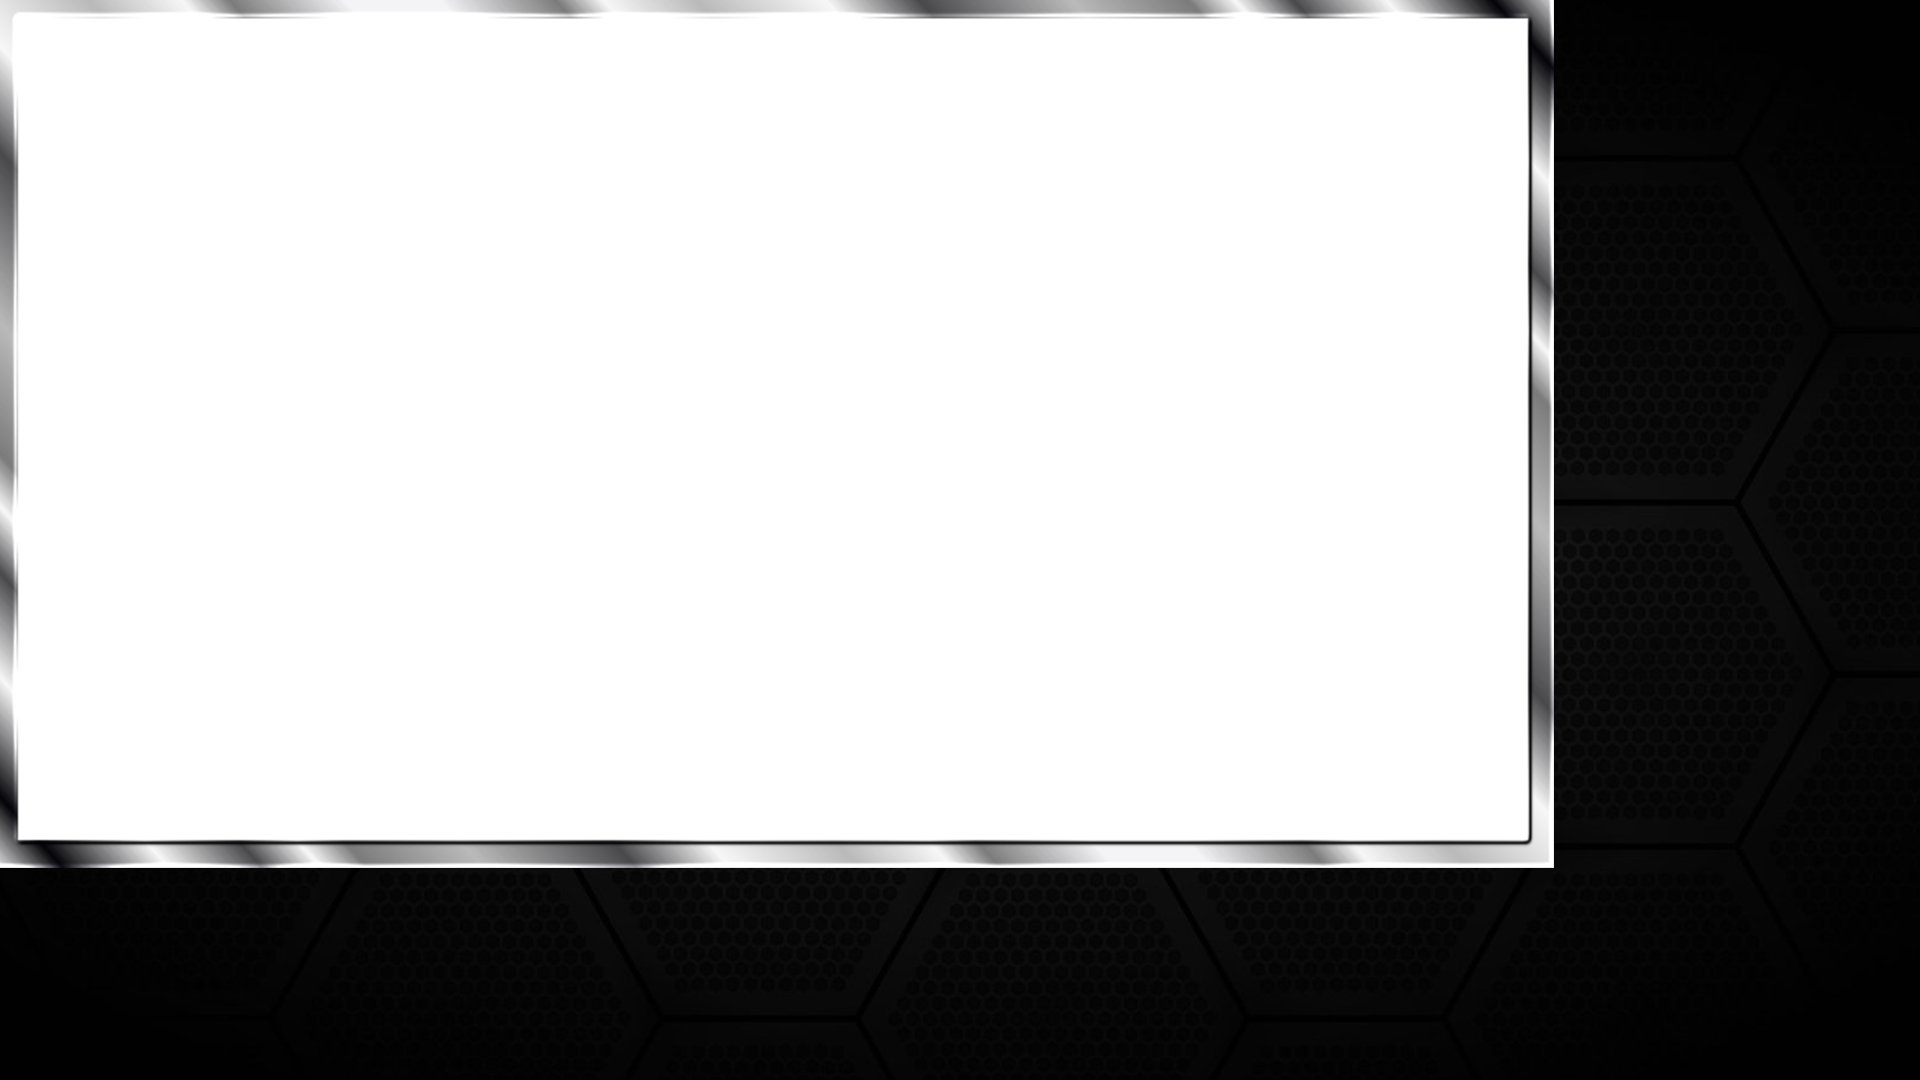 Twitch camera overlay png. Free overlays black with